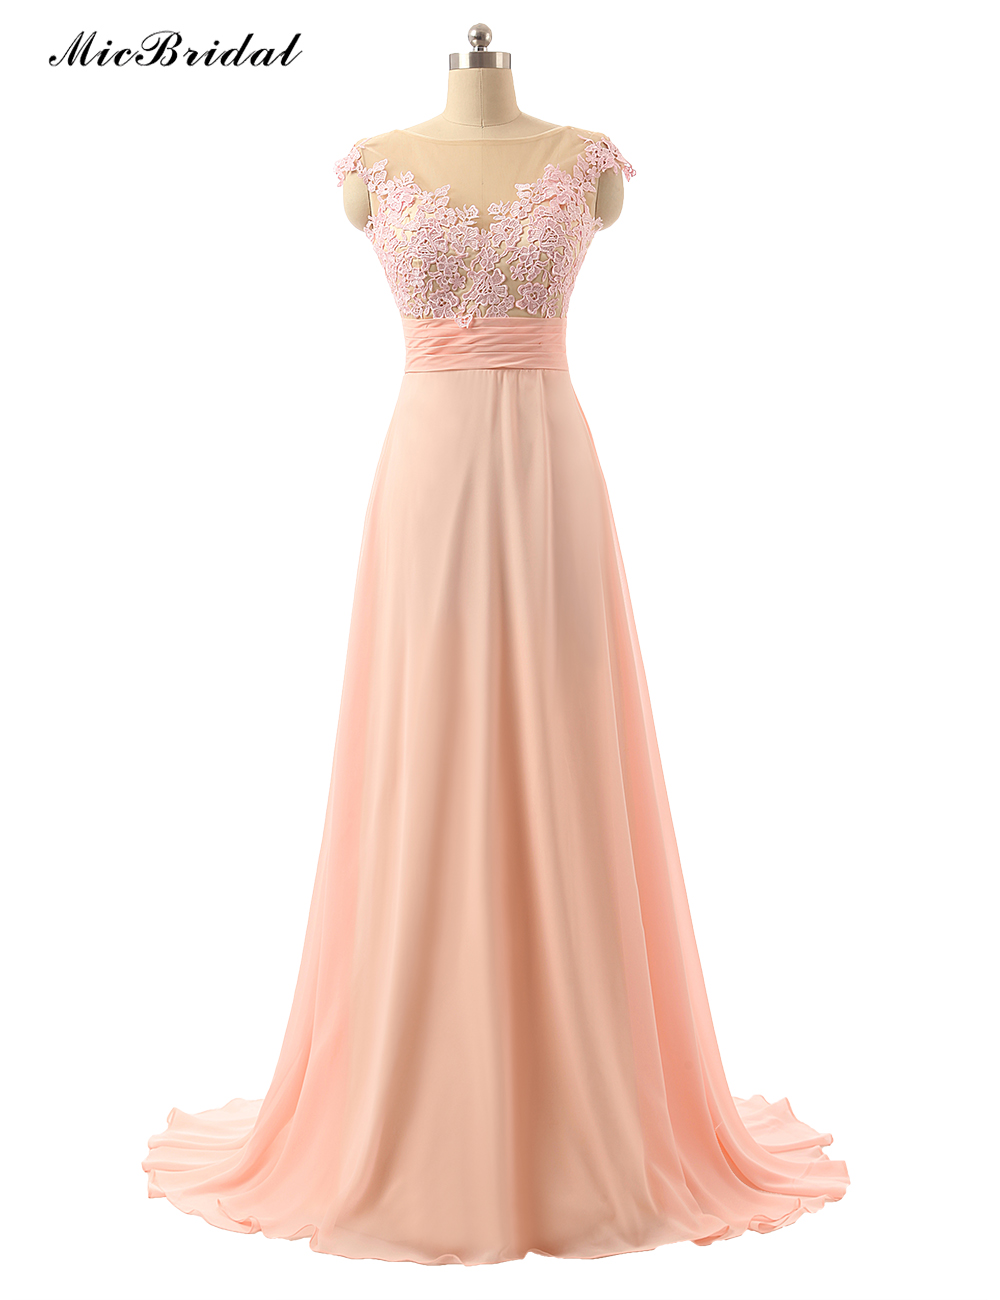 Micbridal cheap a line blush bridesmaid dress 2016 long for Dresses for wedding bridesmaid